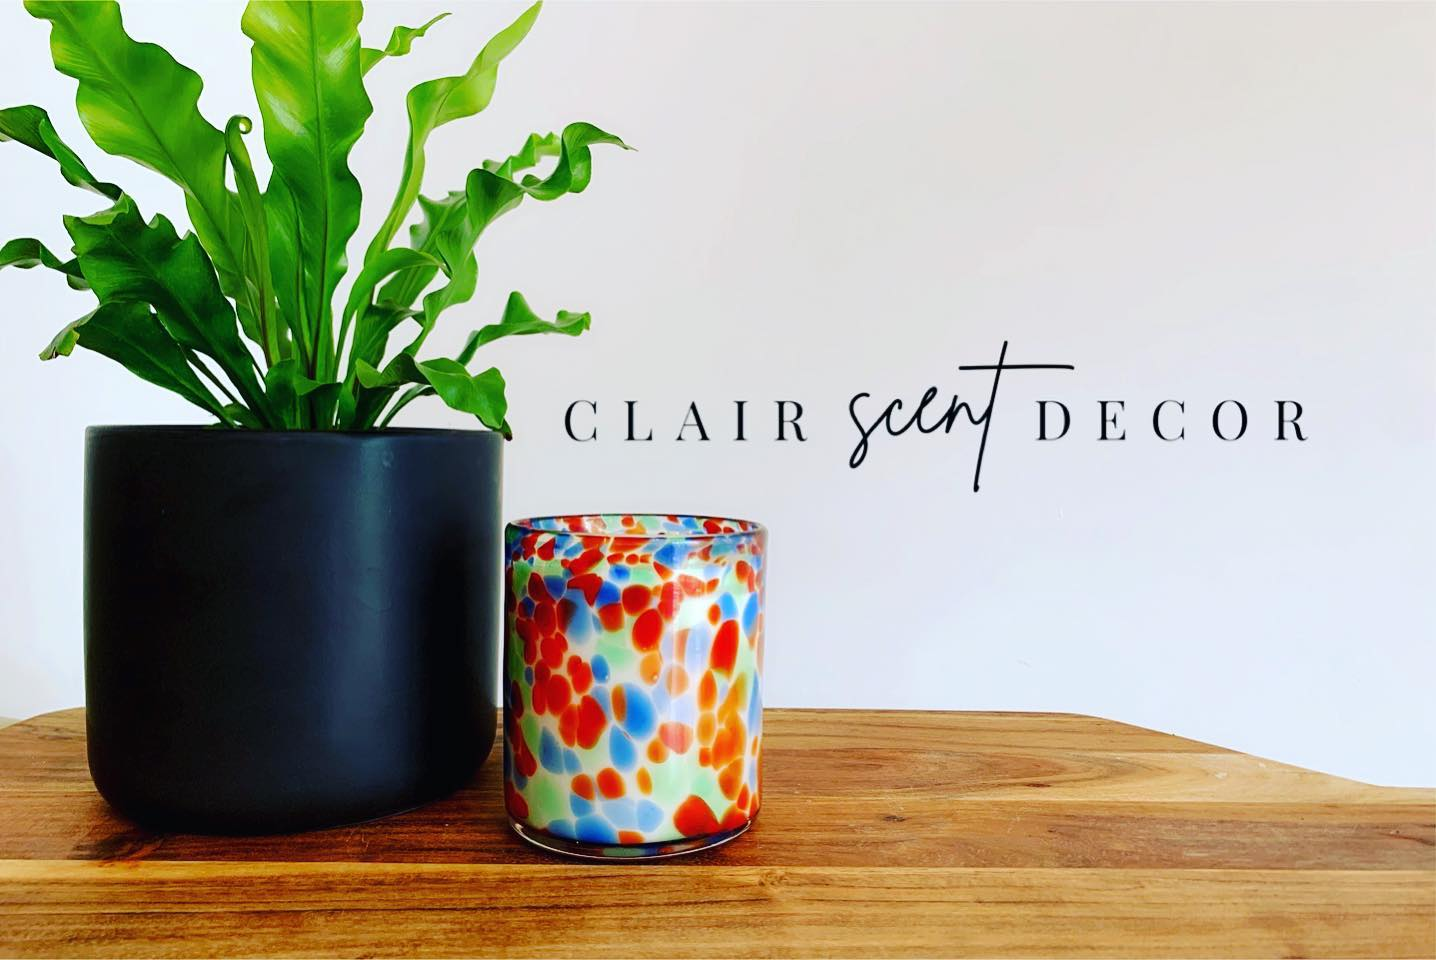 Clair Scent Decor